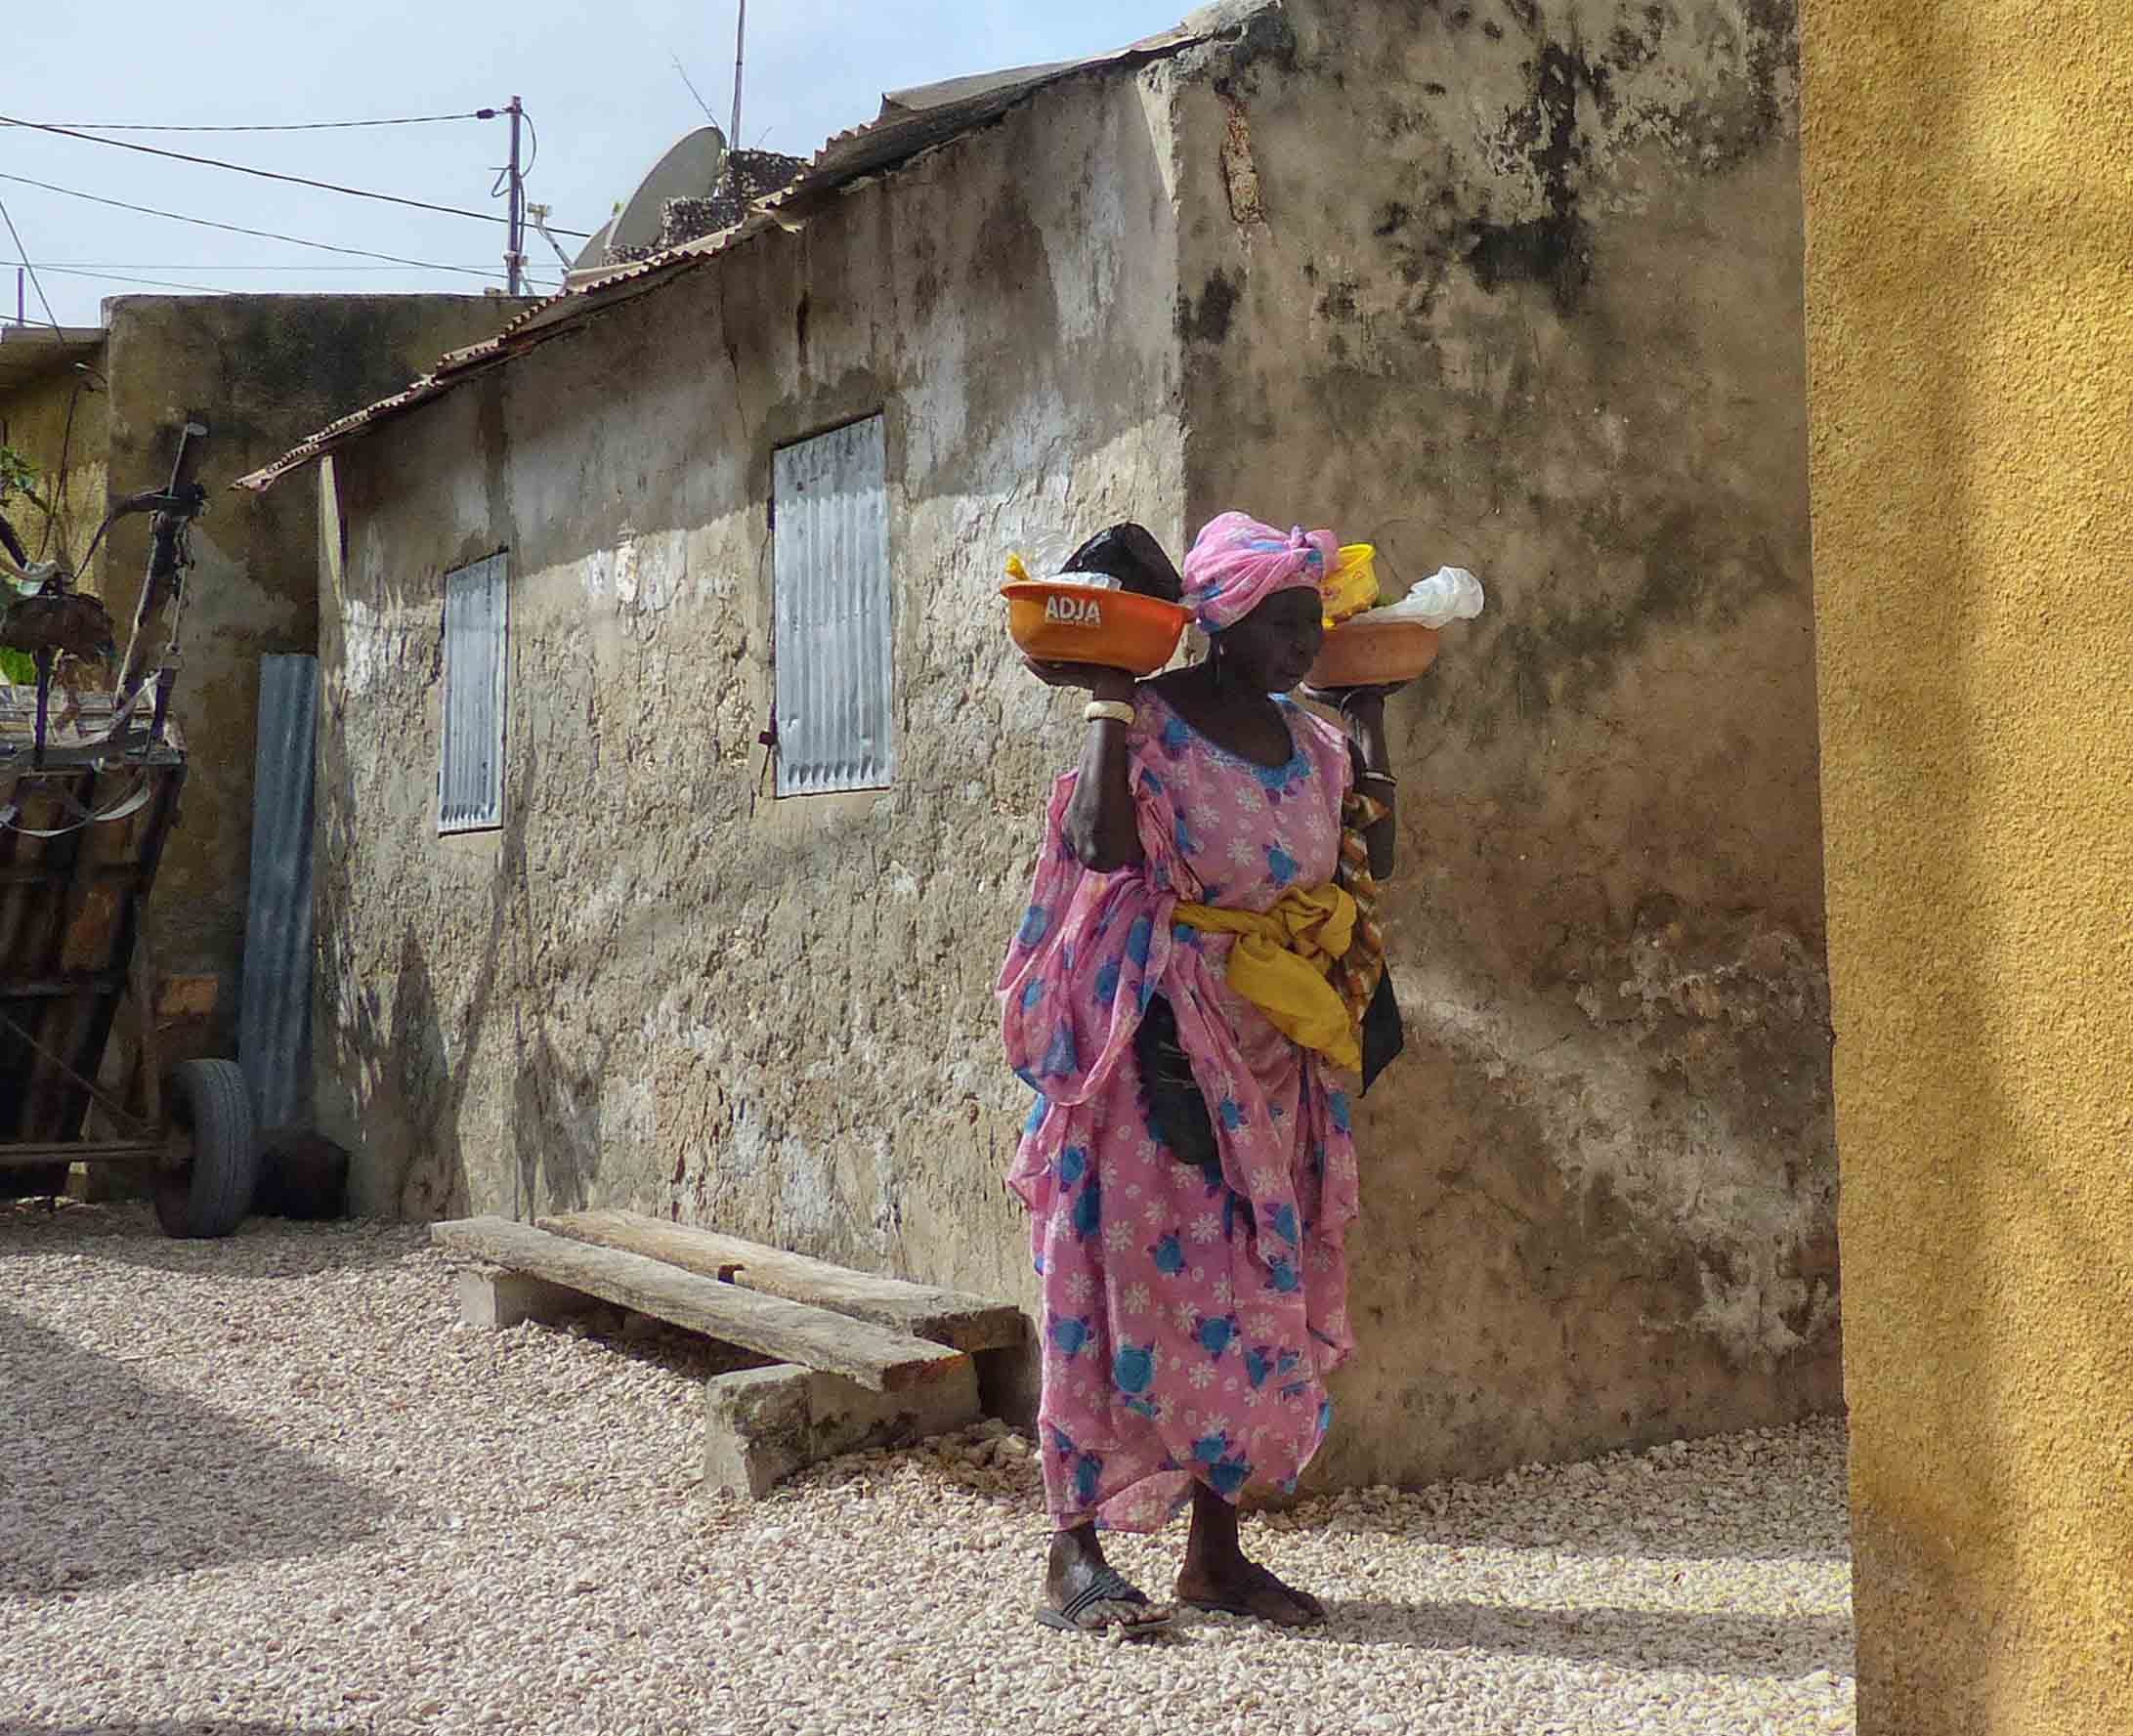 Lady in pink dress carrying bowls